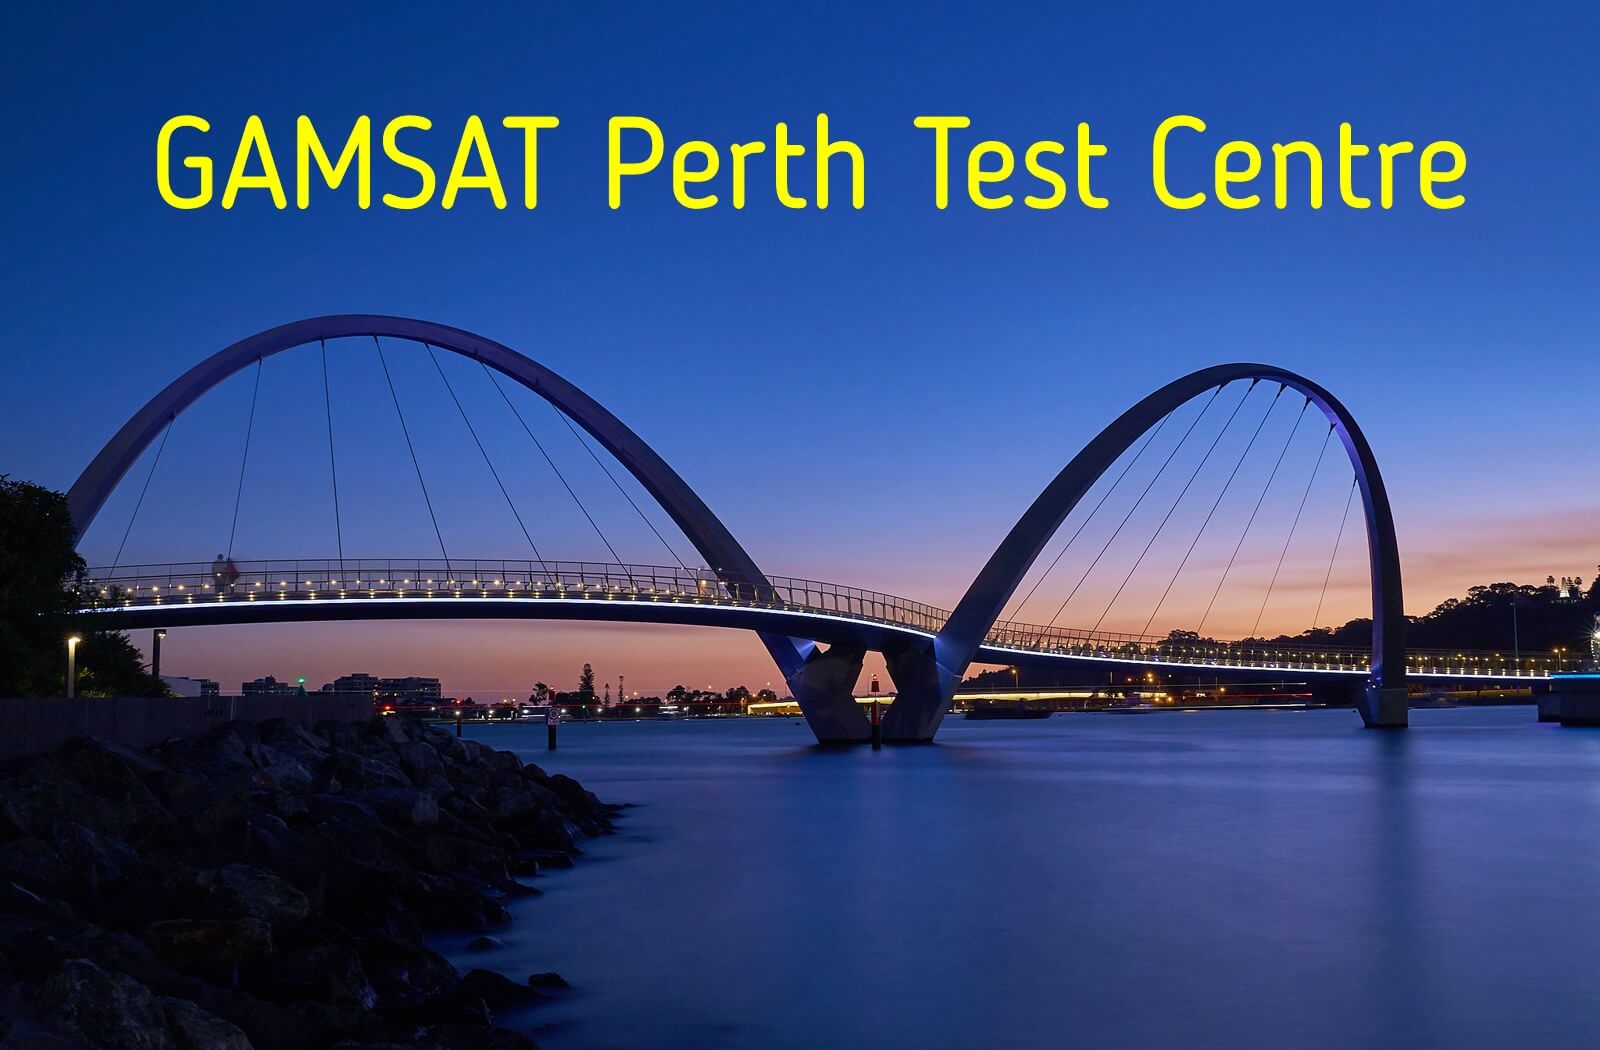 Where is GAMSAT held in Perth?